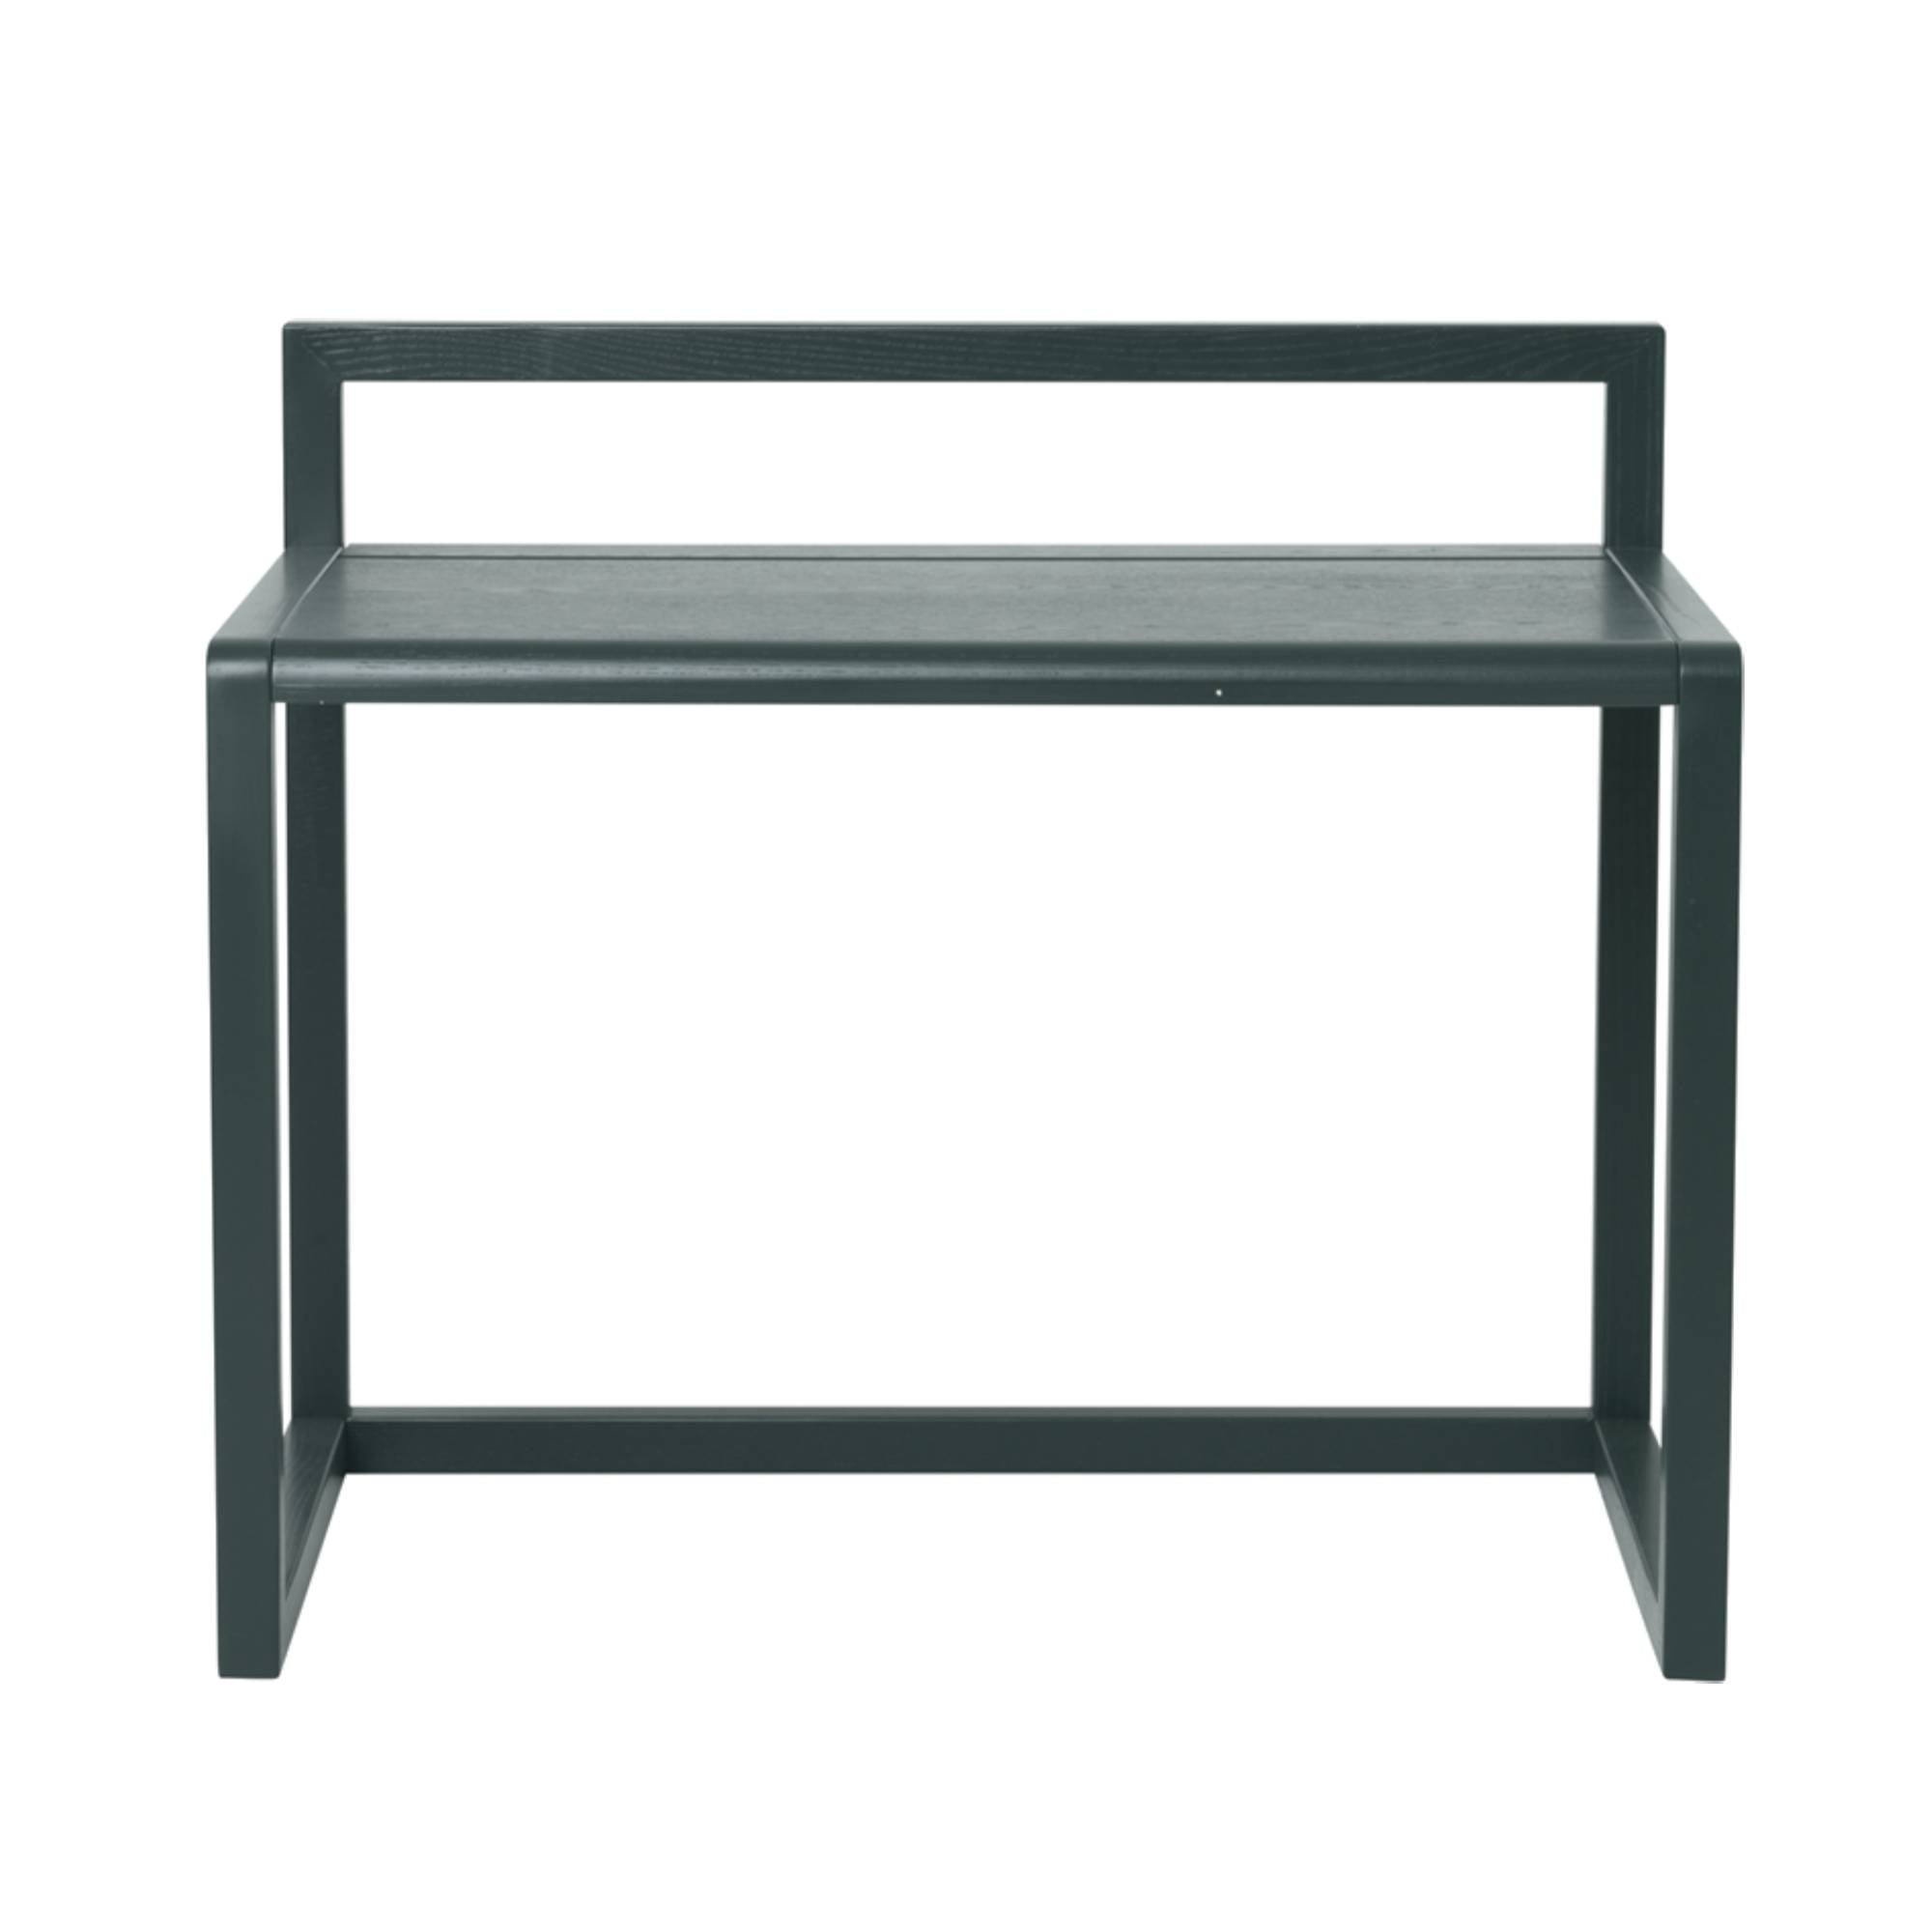 Little Architect Desk: Dark Green